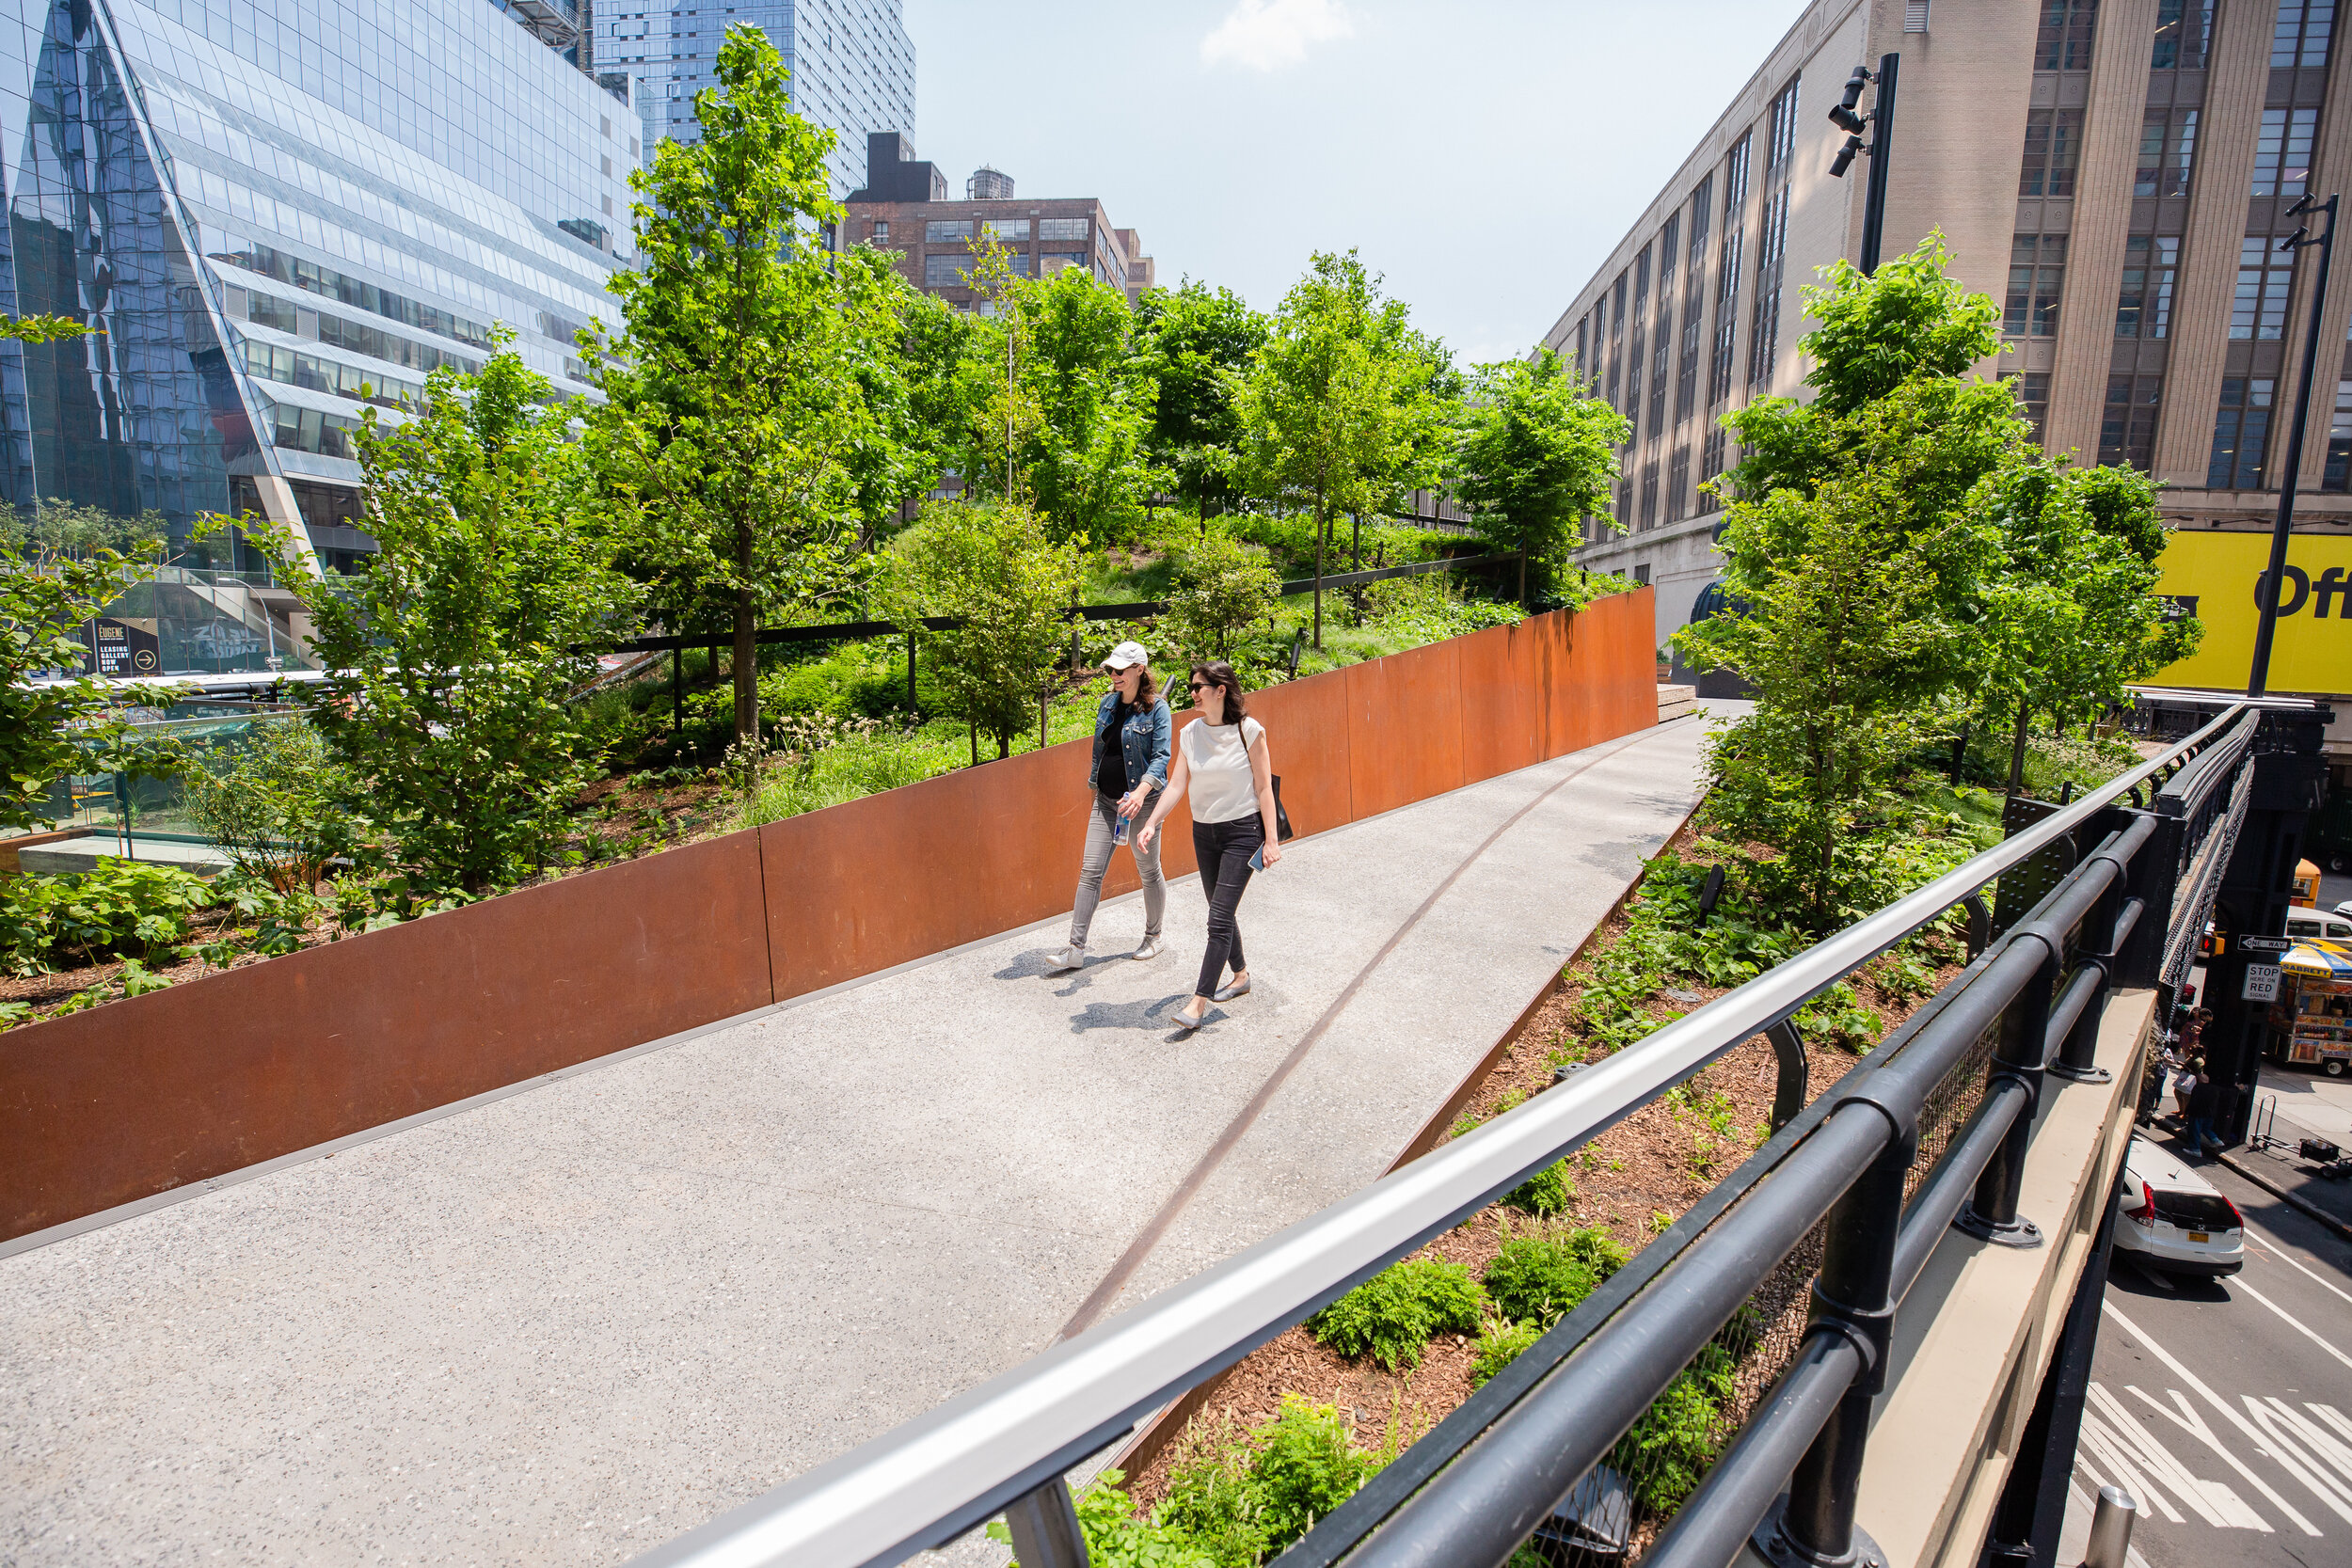 The High Line team has stuck to a 'less is more' approach.